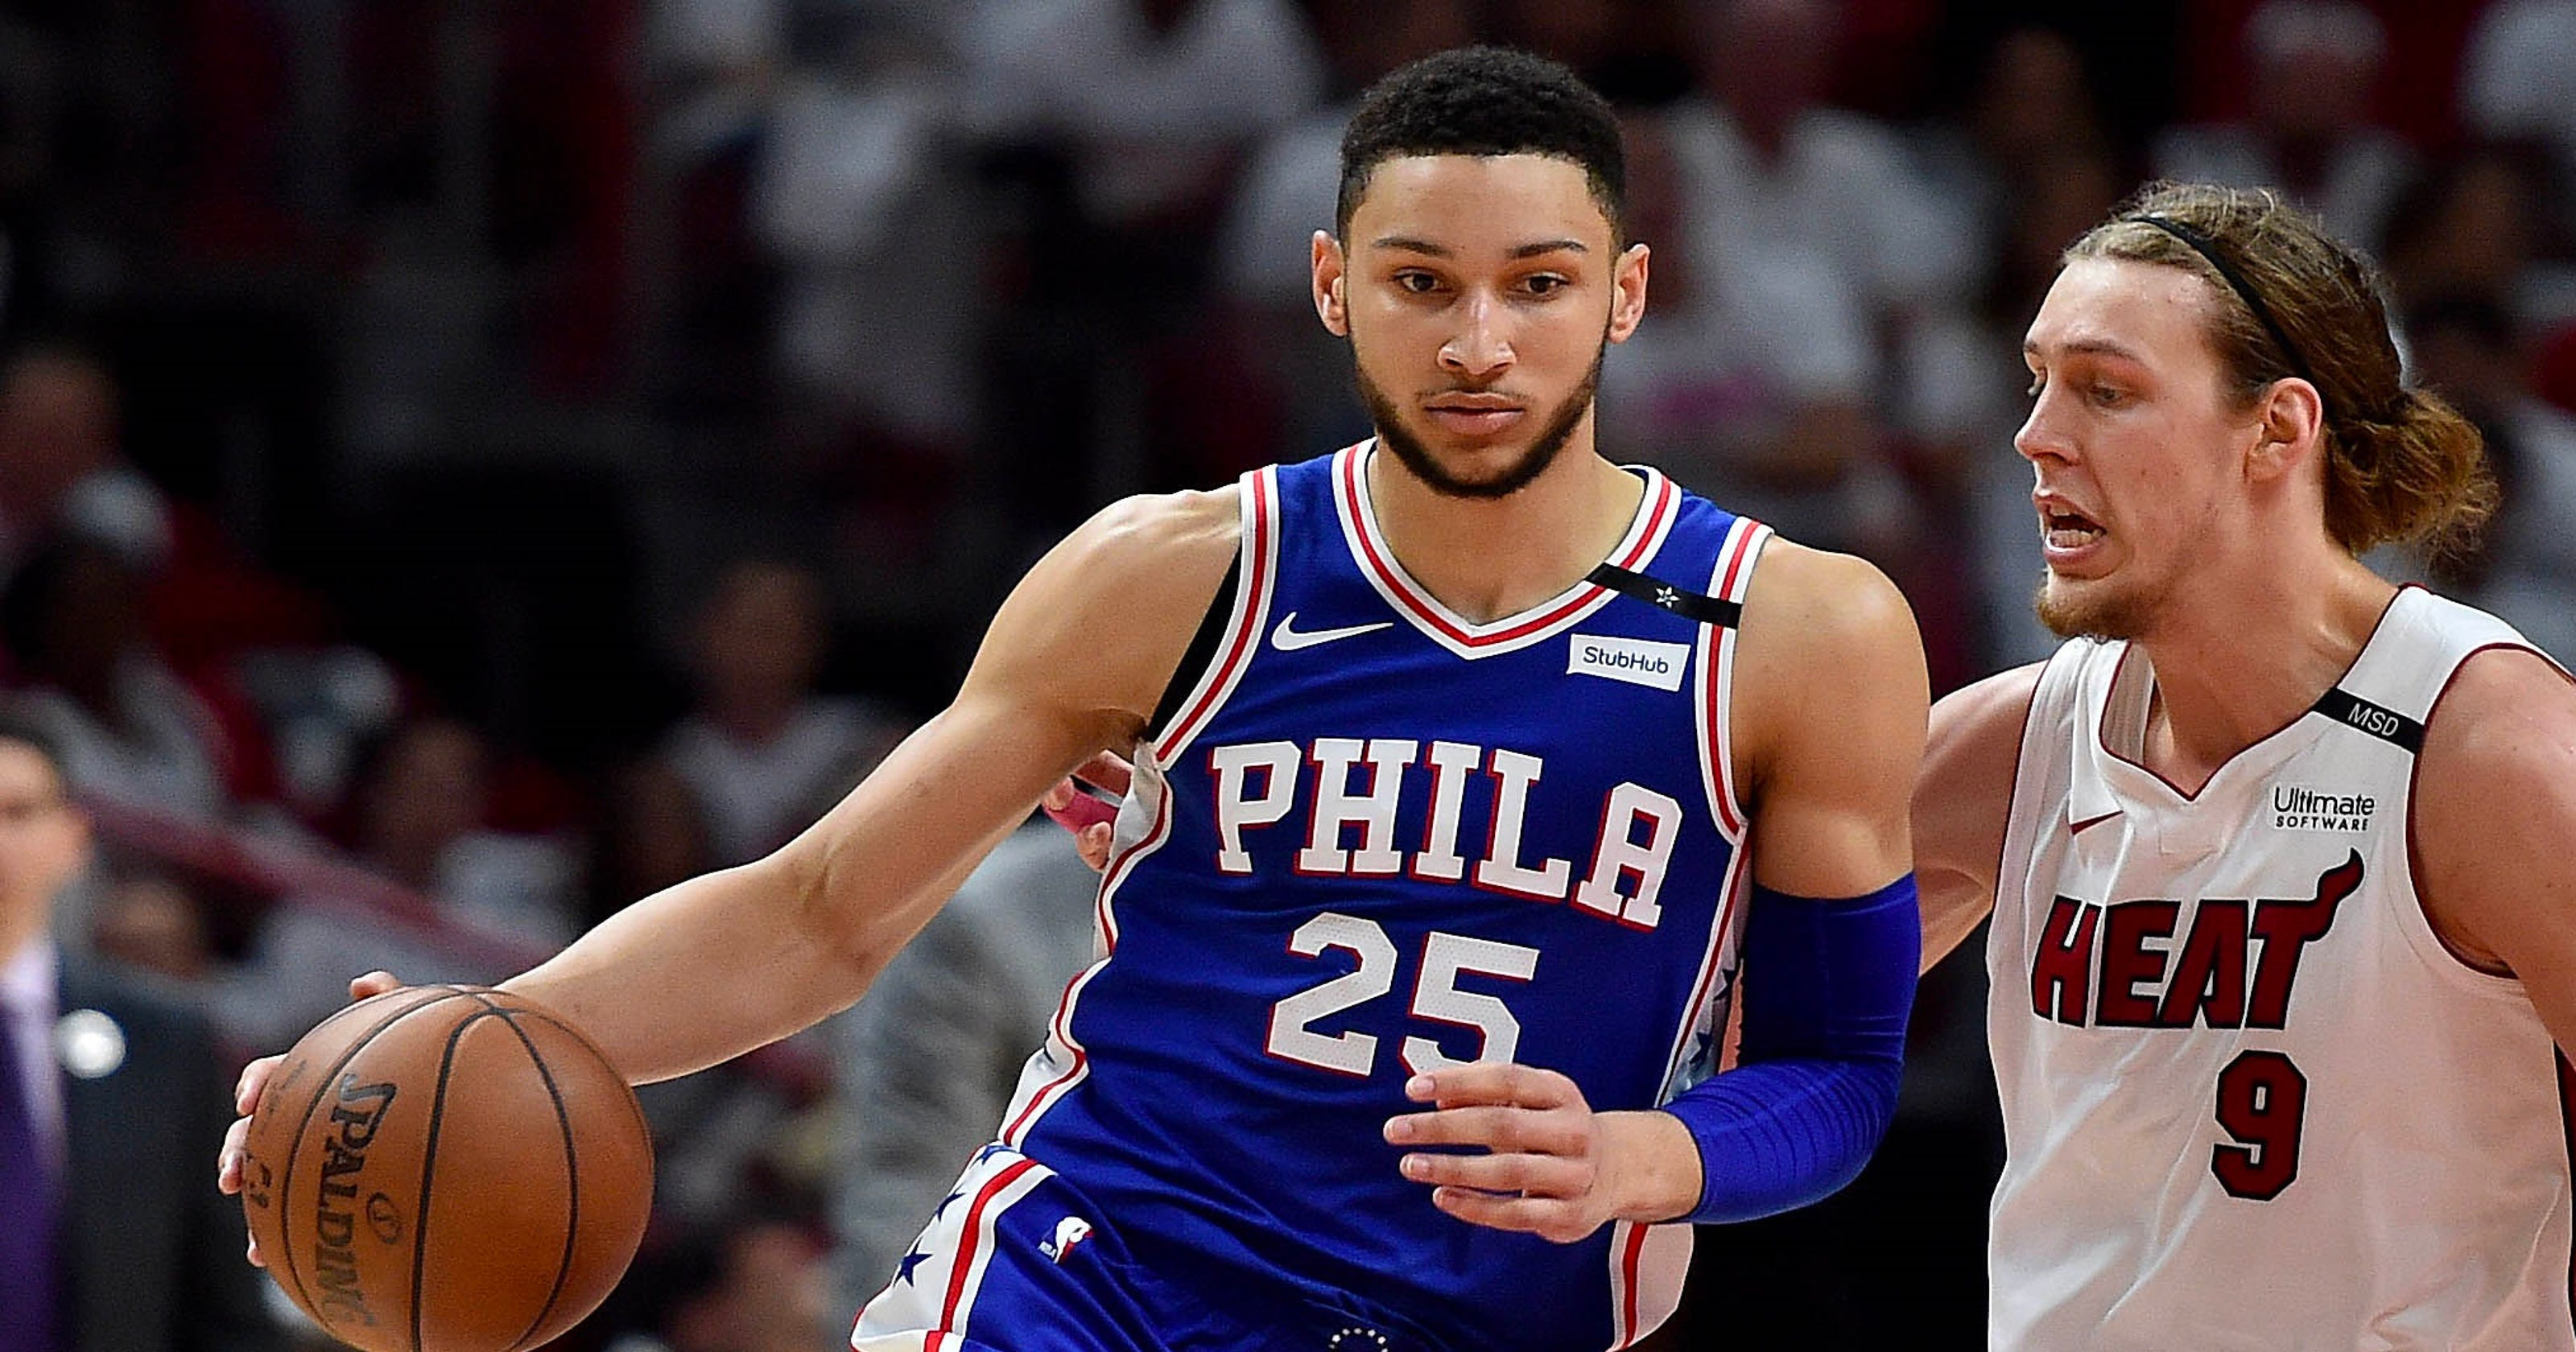 f9e70fcf866 76ers draw blood and take 3-1 series lead on Heat